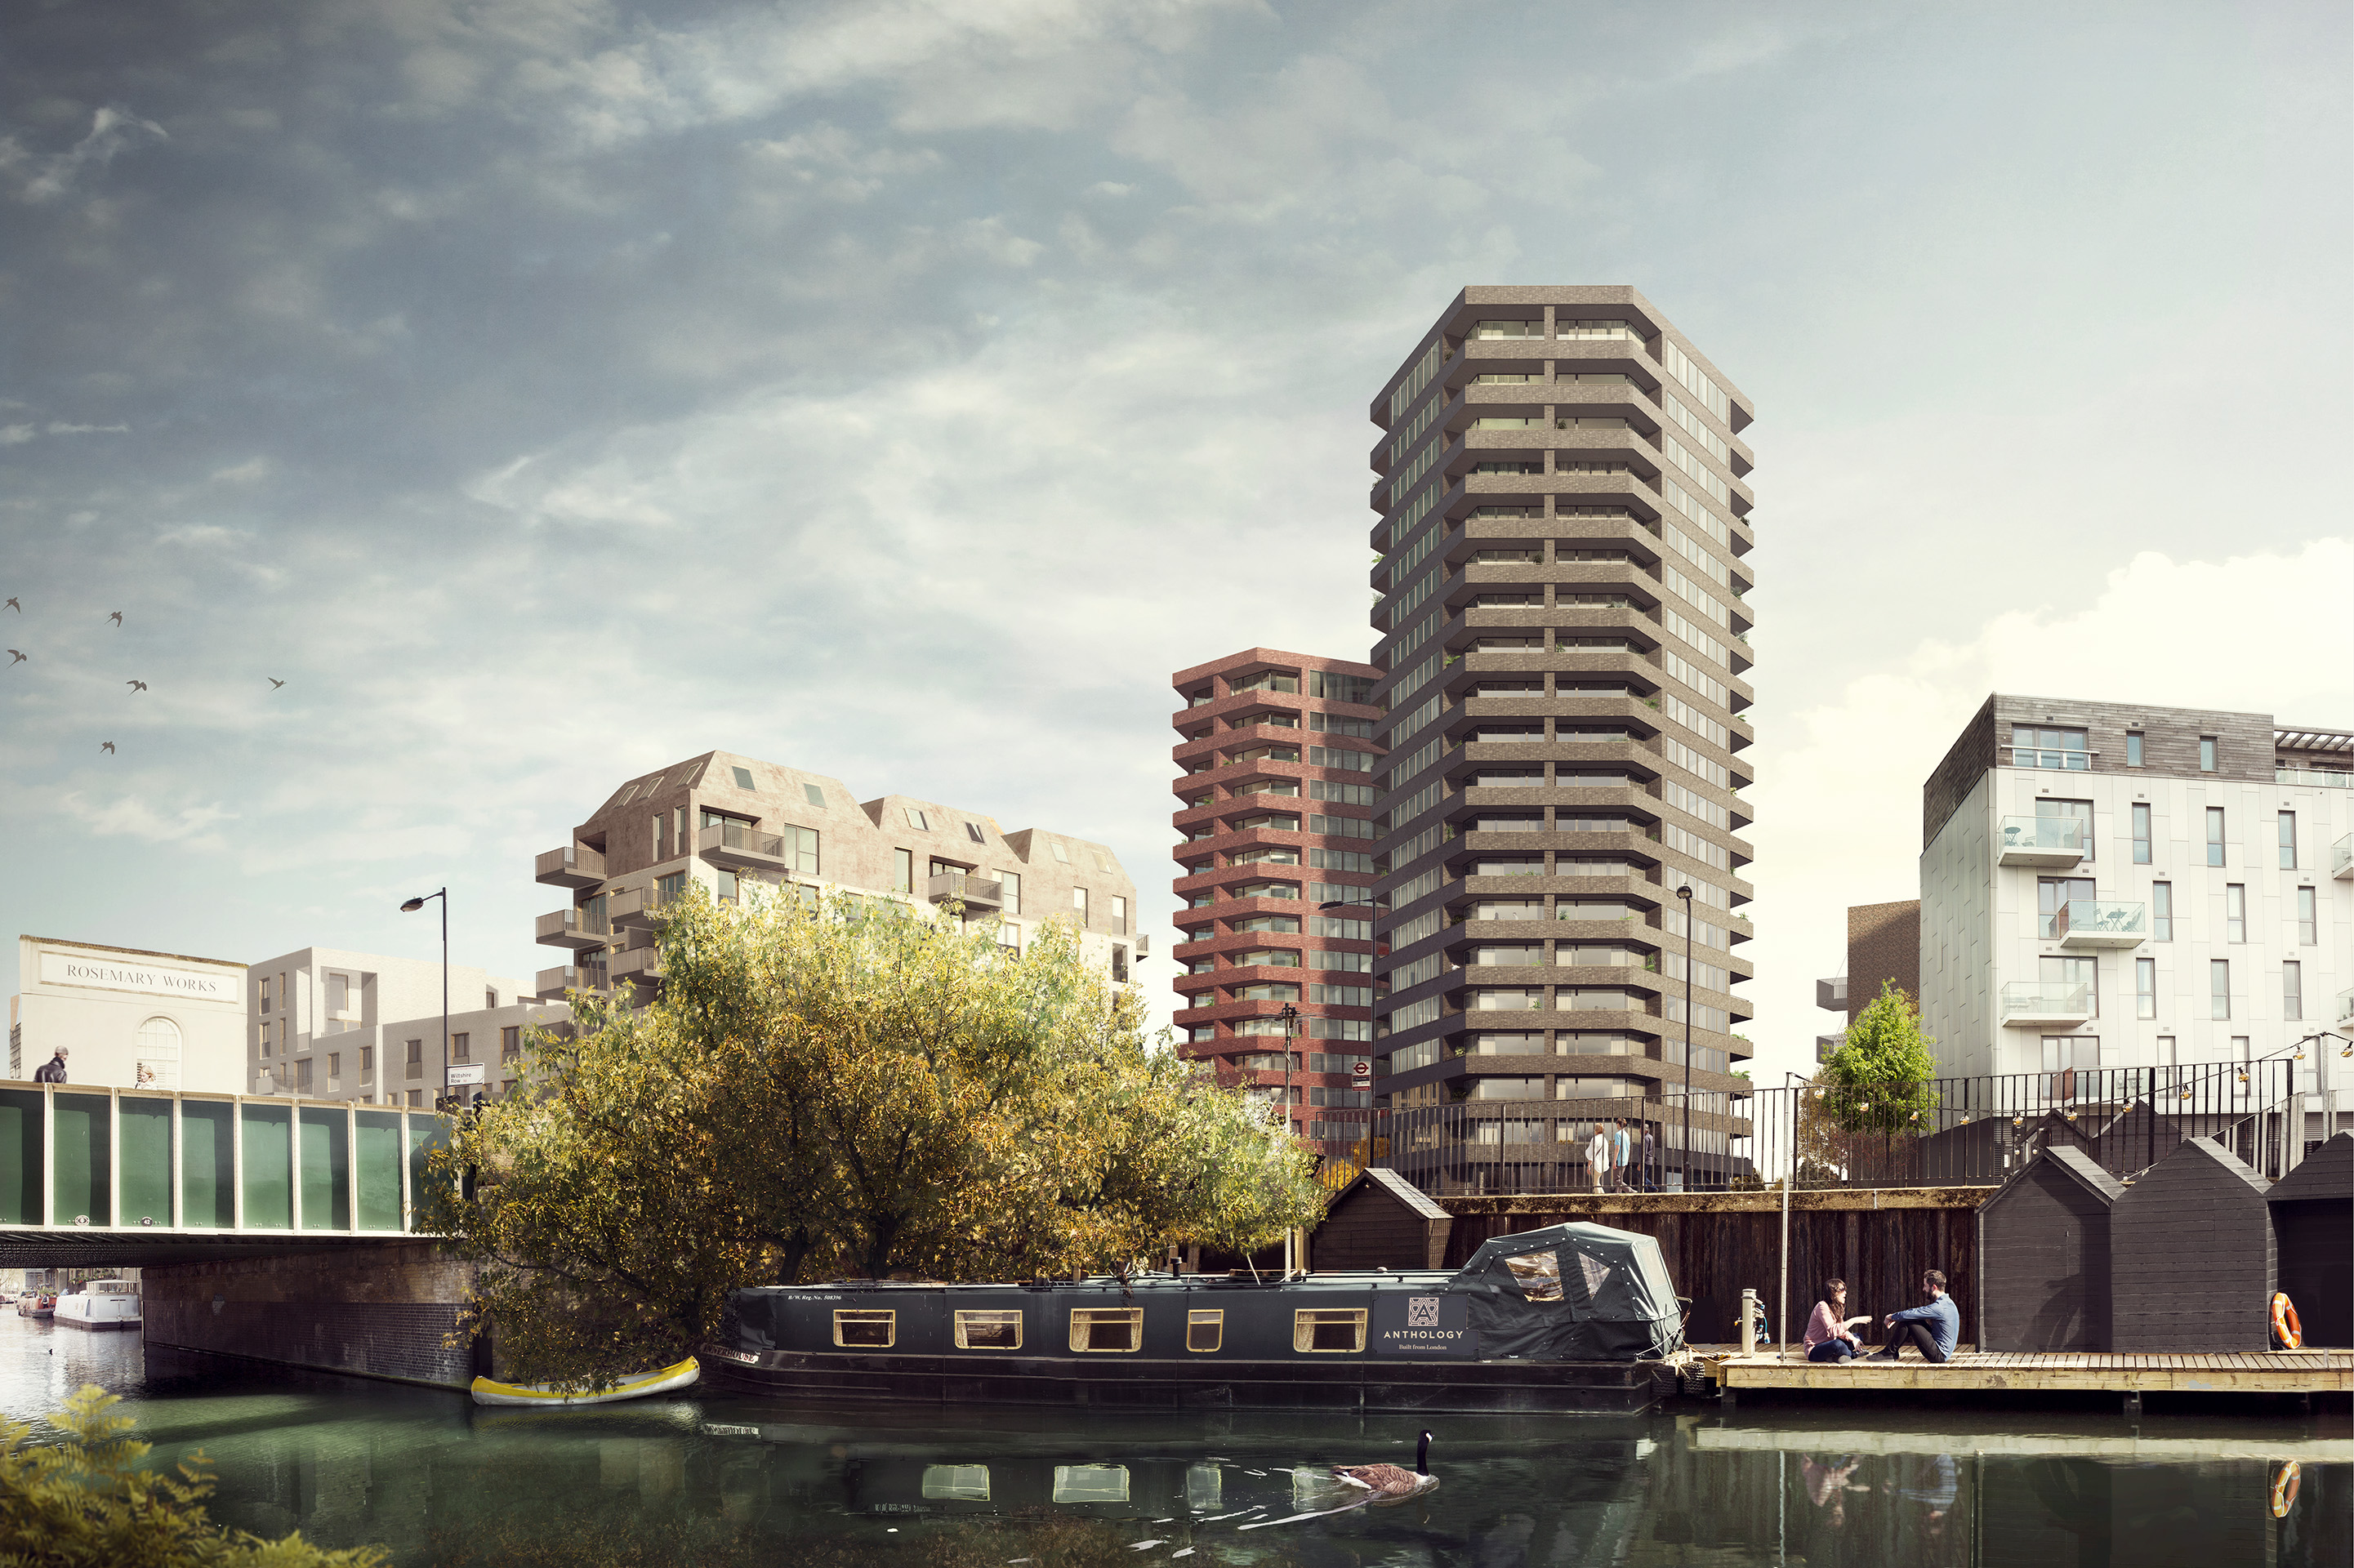 Anthology's Hoxton Canal-side site